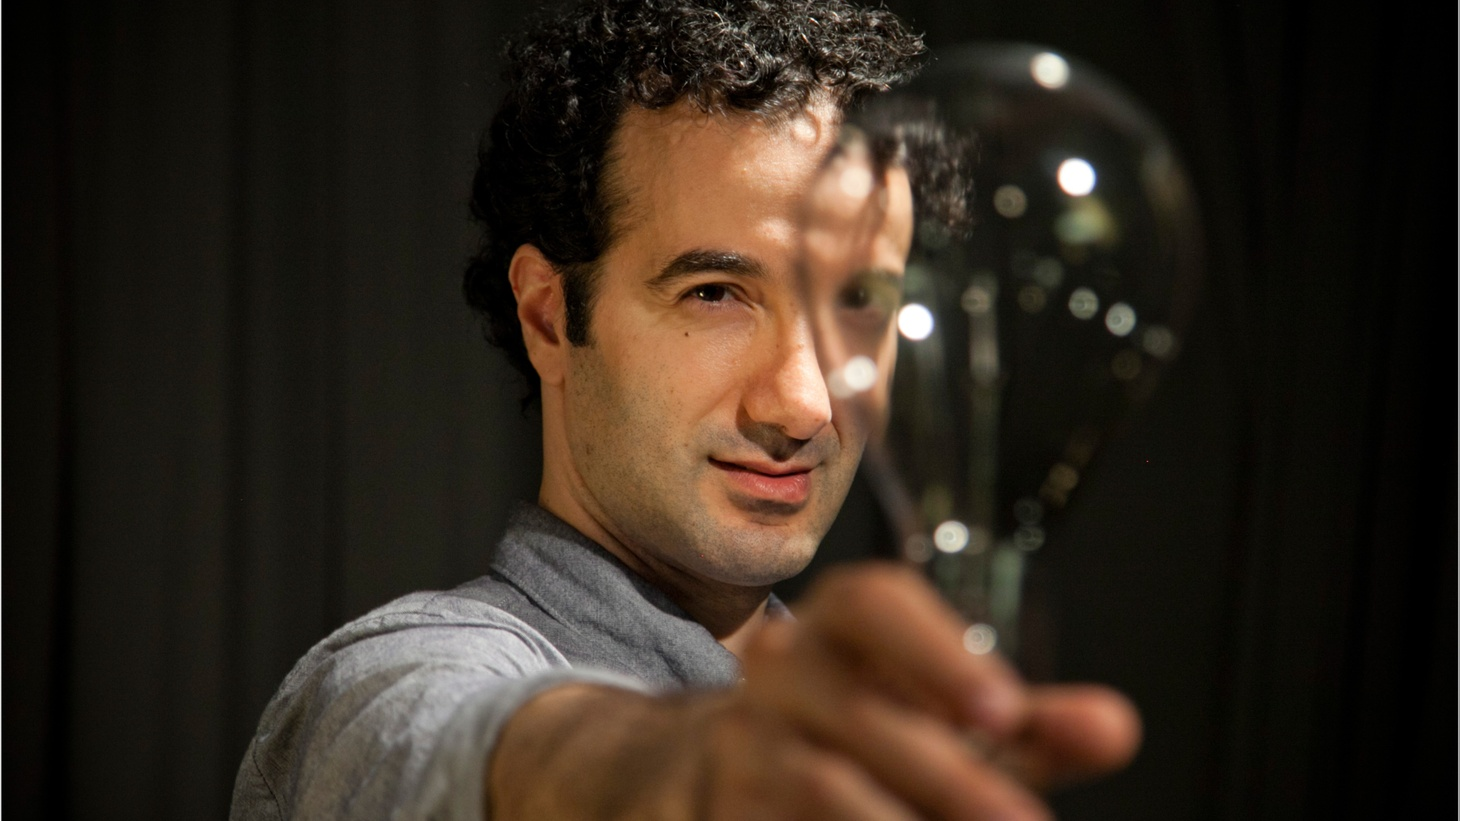 Radiolab host Jad Abumrad is known for experimenting with sounds on his show and his Guest DJ picks reflect both his musical sophistication as well as some guilty pleasures. Jad will be speaking at the Luckman Fine Arts Center on October 14.